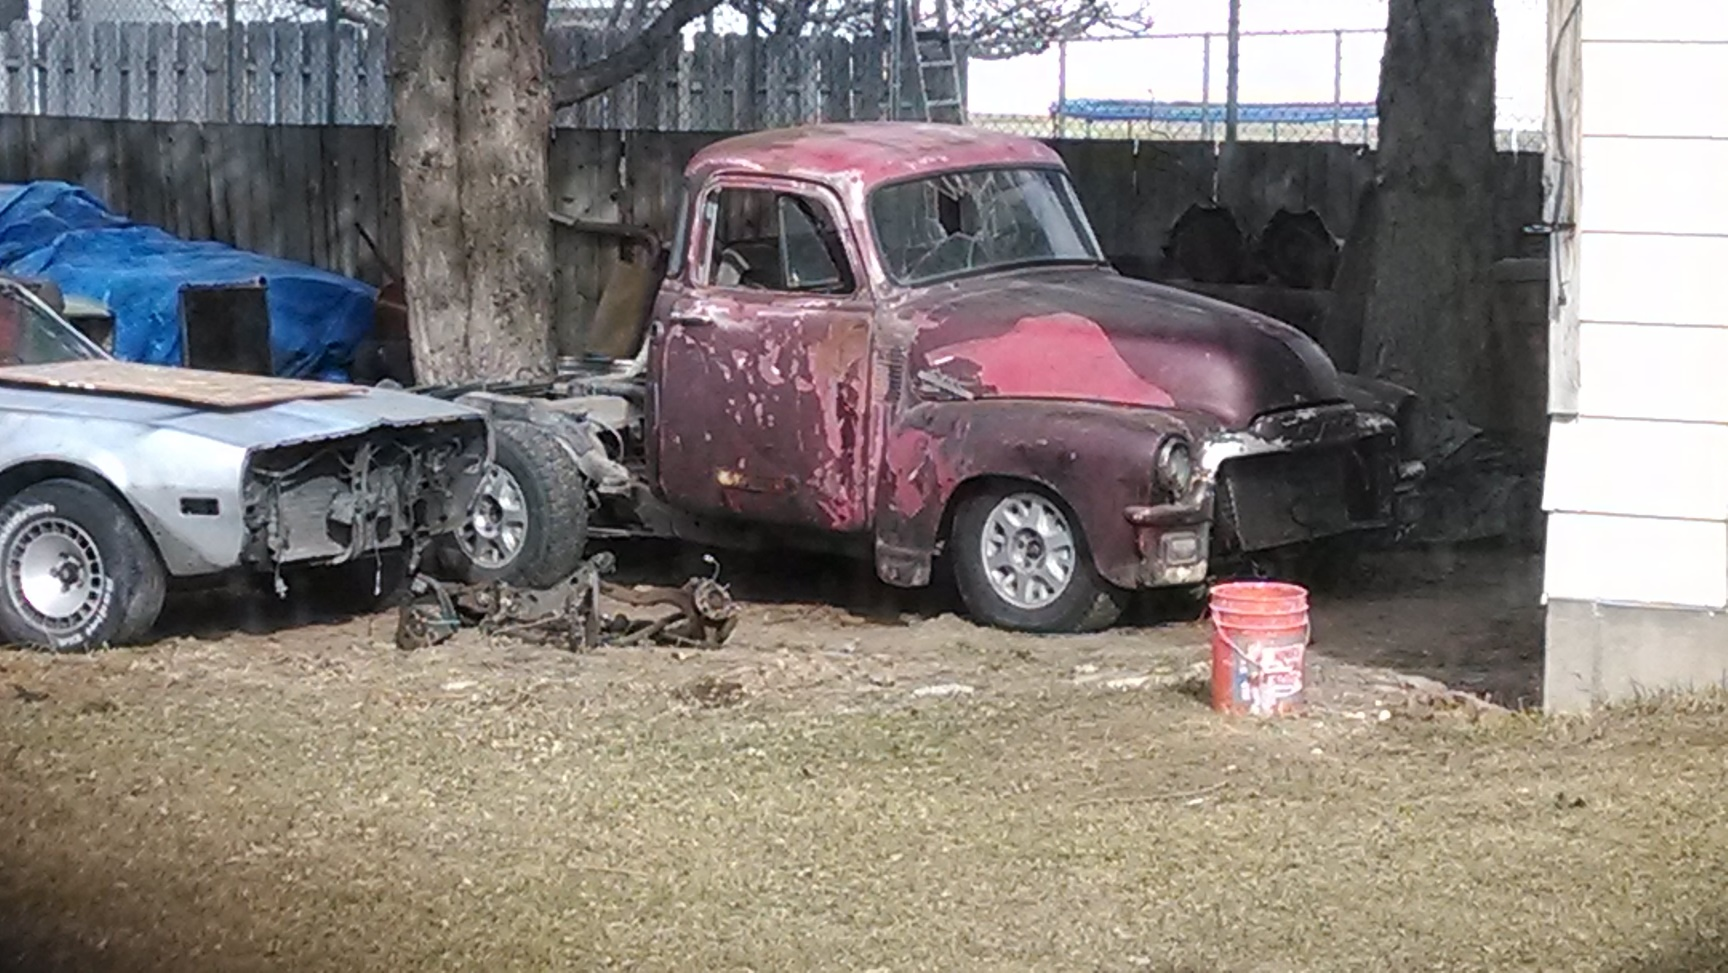 New guy here, 1951 Chevy 3100 questions